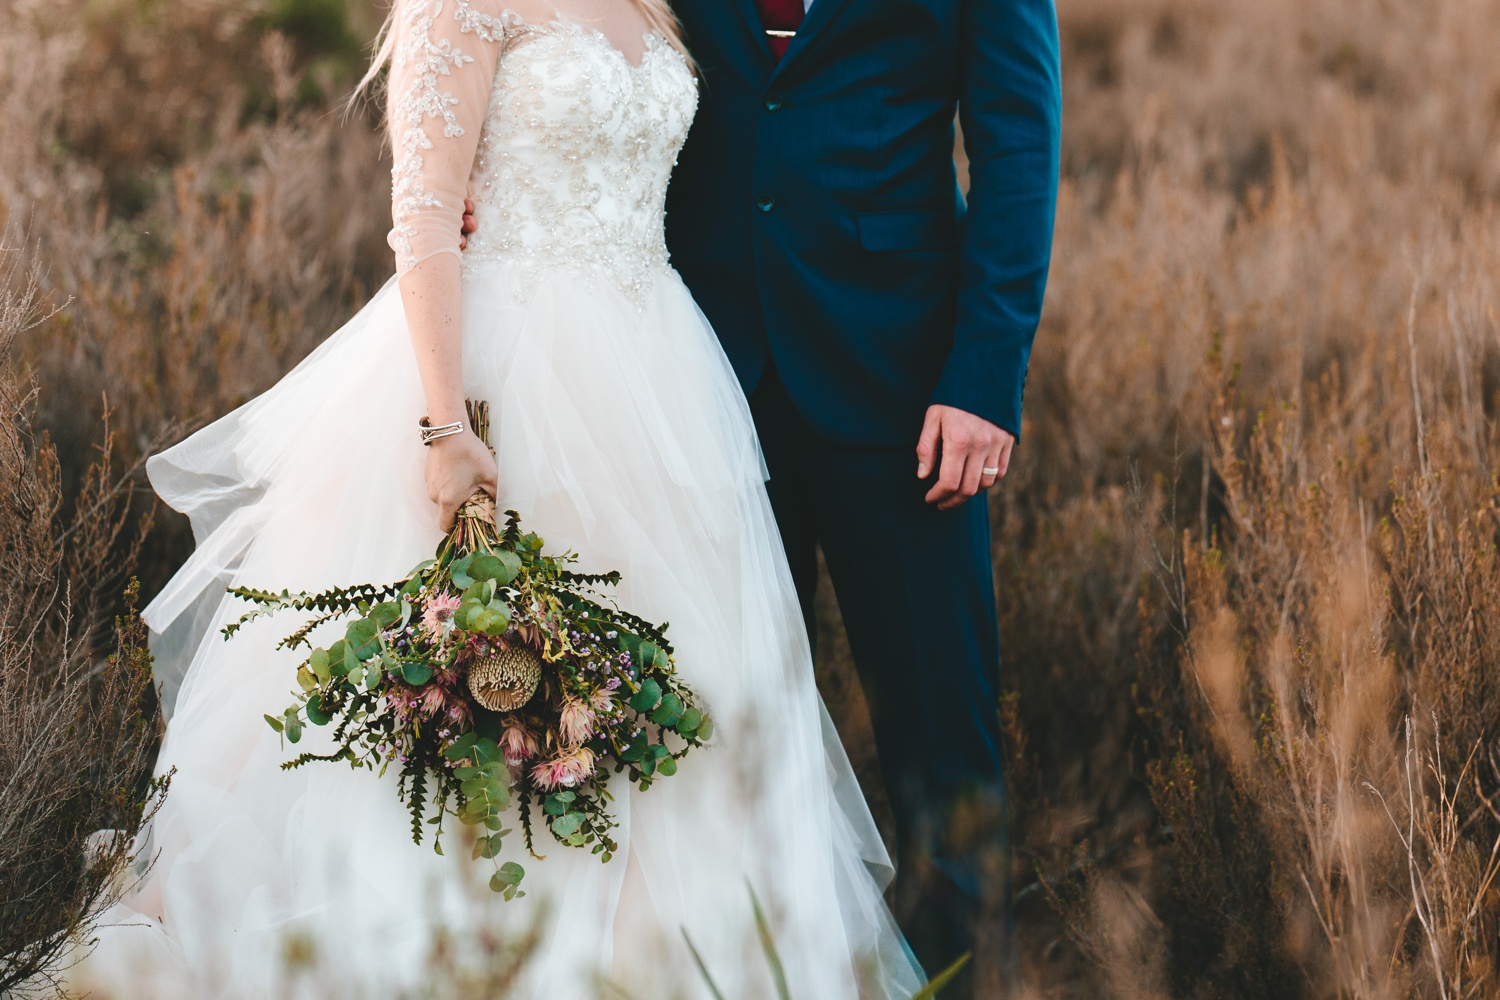 cathryn_warwick_wearecharlieray_hopewell_conservation_eastern_cape_wedding_0109.jpg